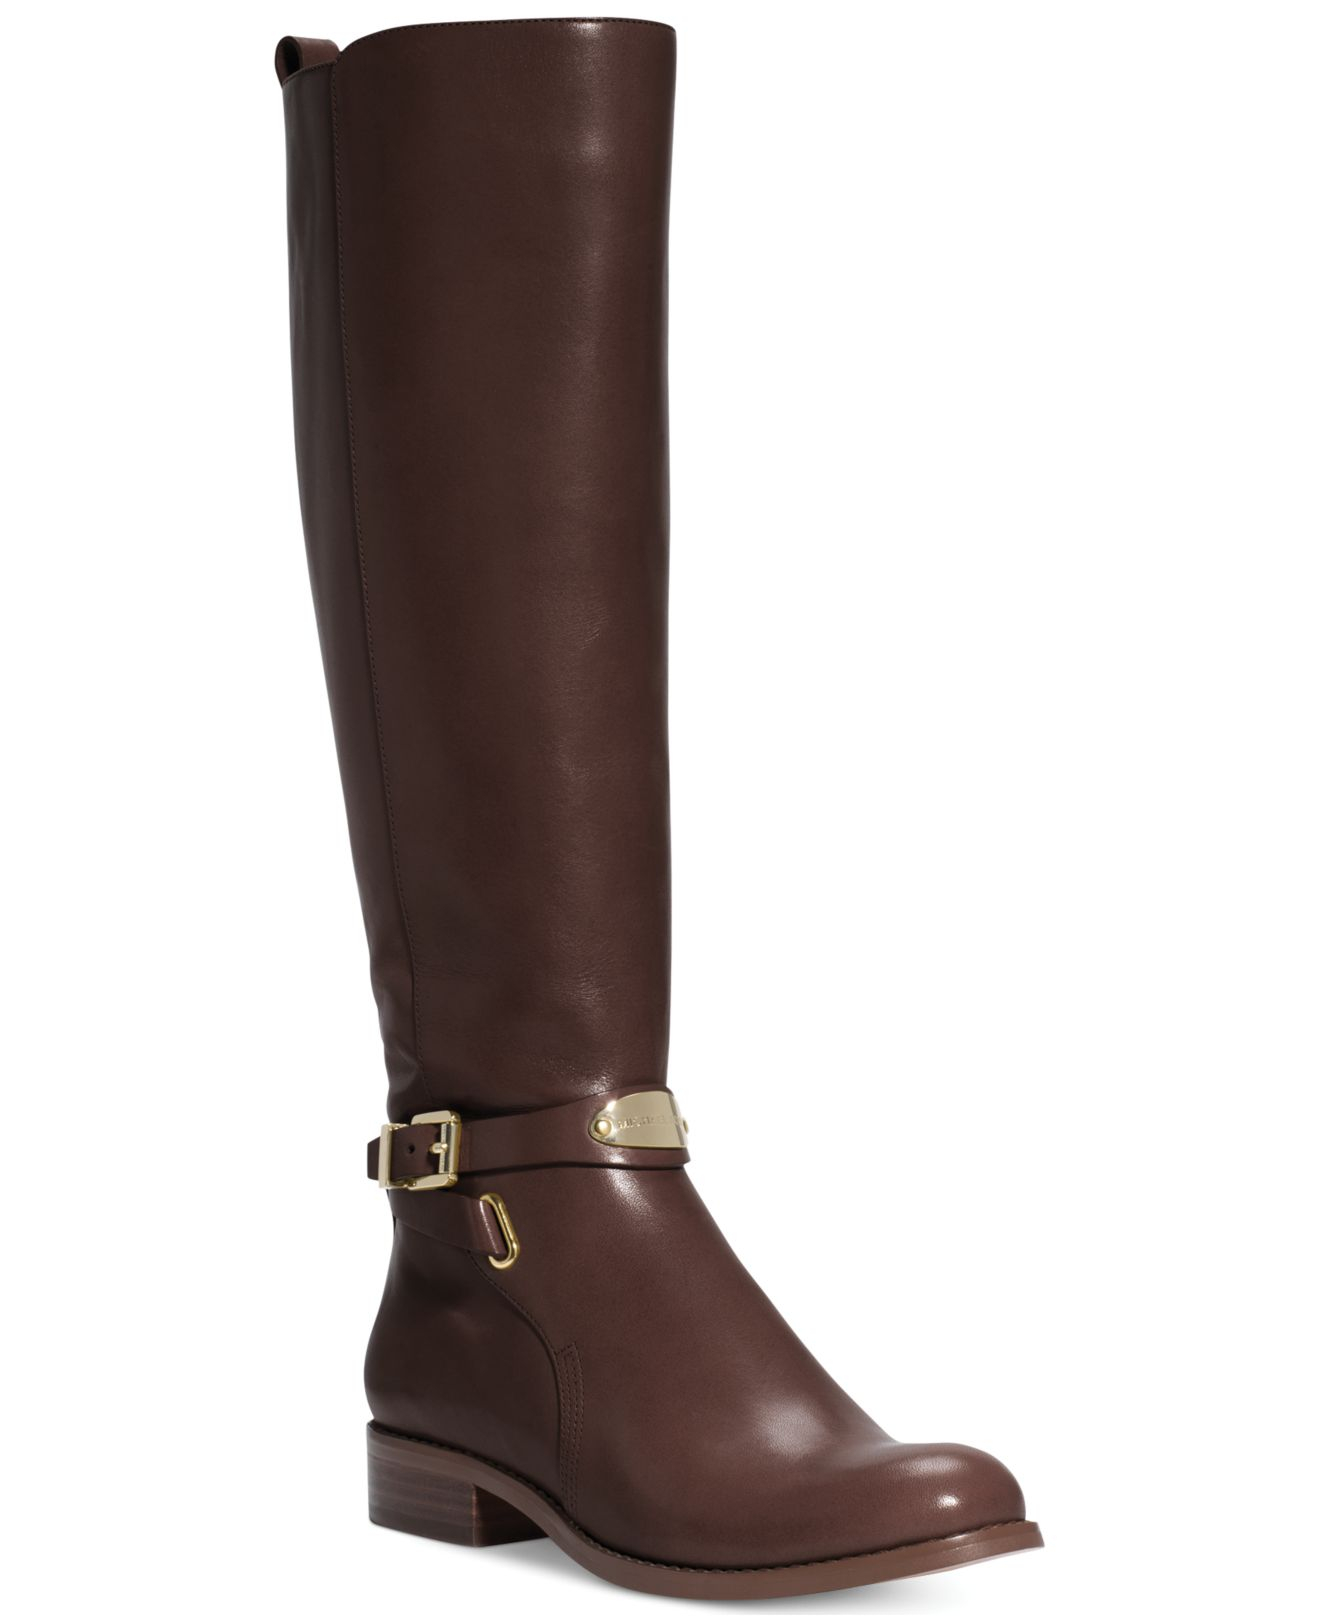 0e3ec051475 Gallery. Previously sold at  Macy s · Women s Riding Boots Women s Michael  Kors Arley ...